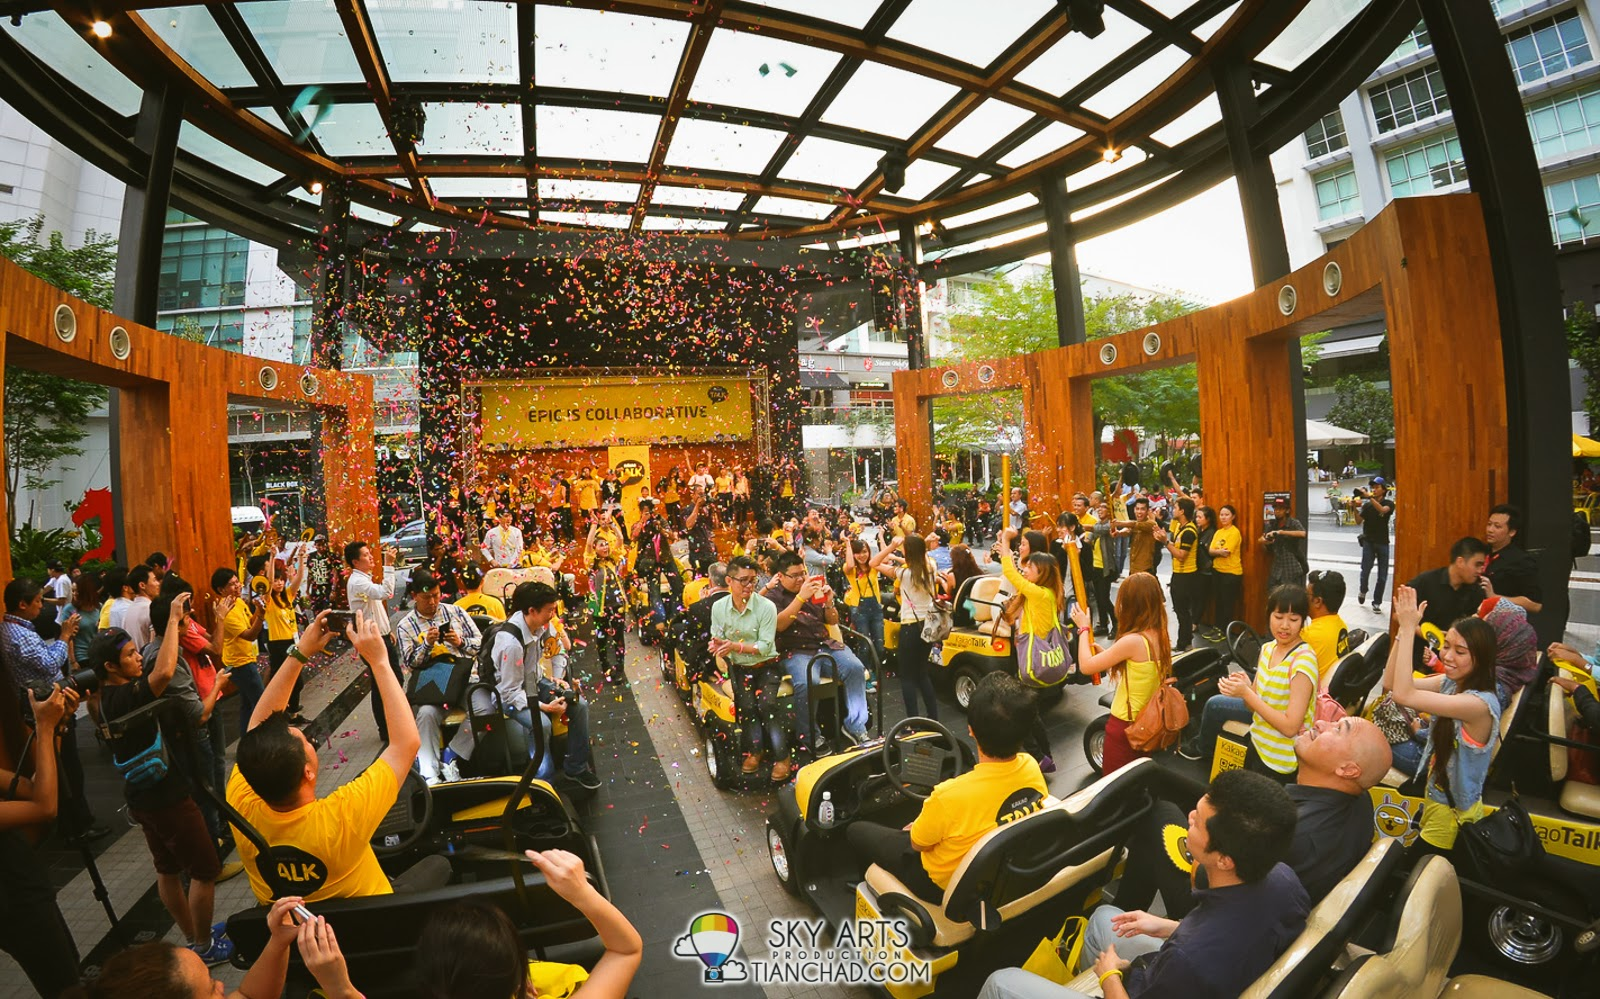 Showered by confetti at the last epic KakaoTalk station